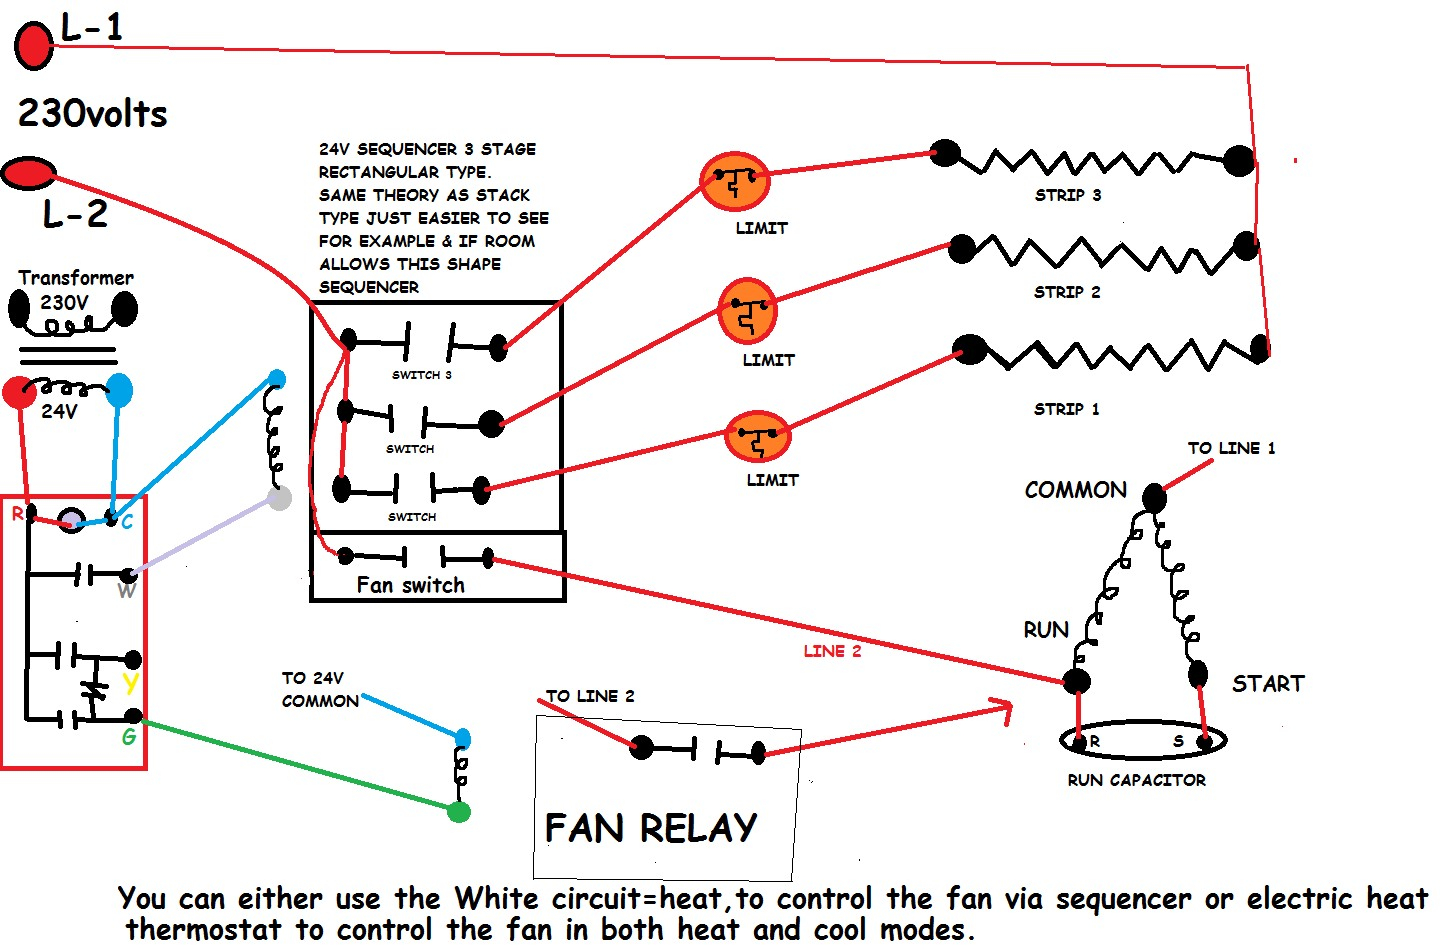 Furnace Blower Fan Relay Wiring - Get Wiring Diagram on